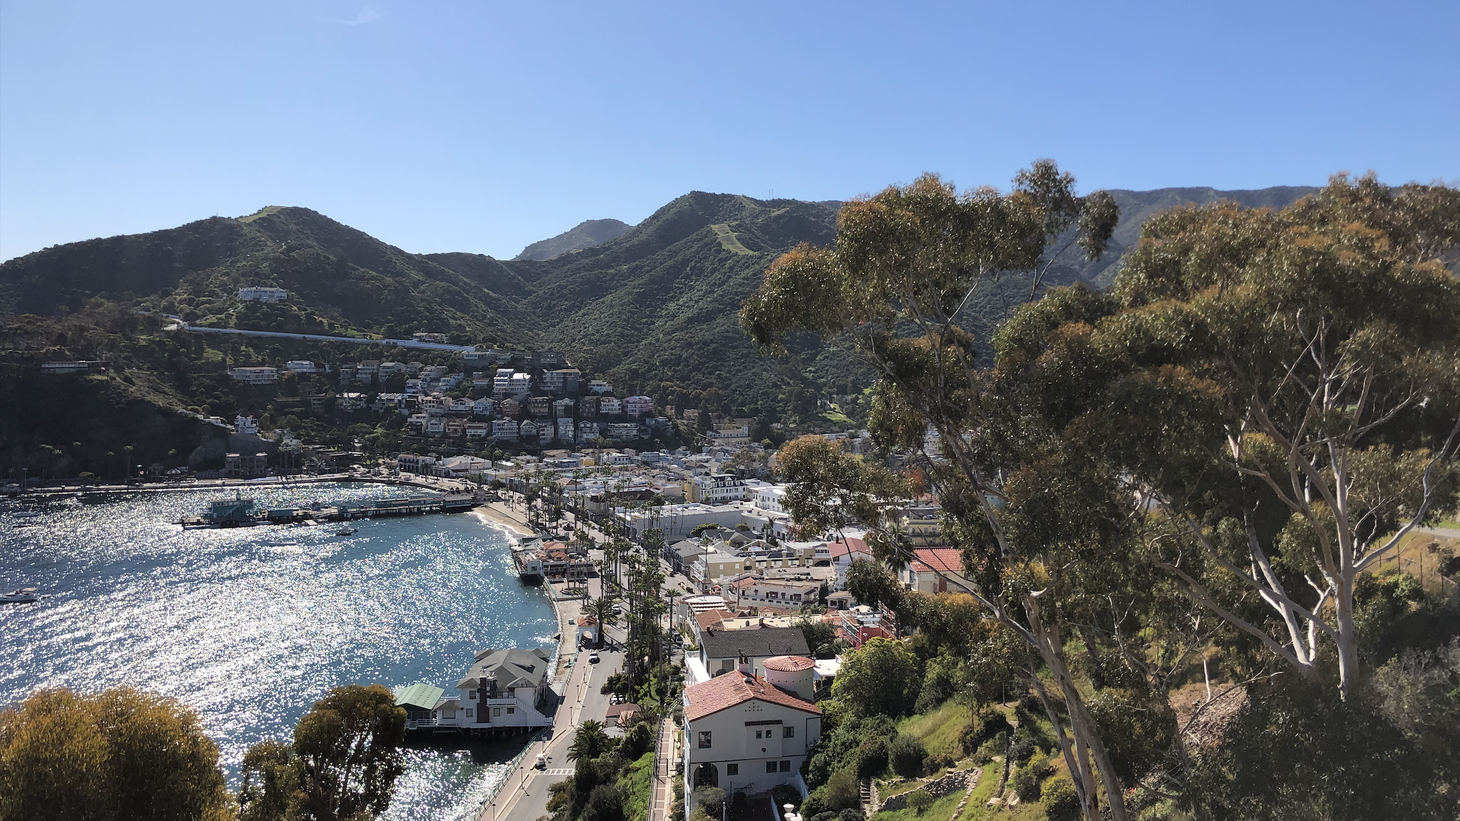 View of the City of Avalon on Catalina Island, from the century-old bell tower that chimes every 15 minutes. Many residents hold more than one job to keep up with the standard of living on the island.